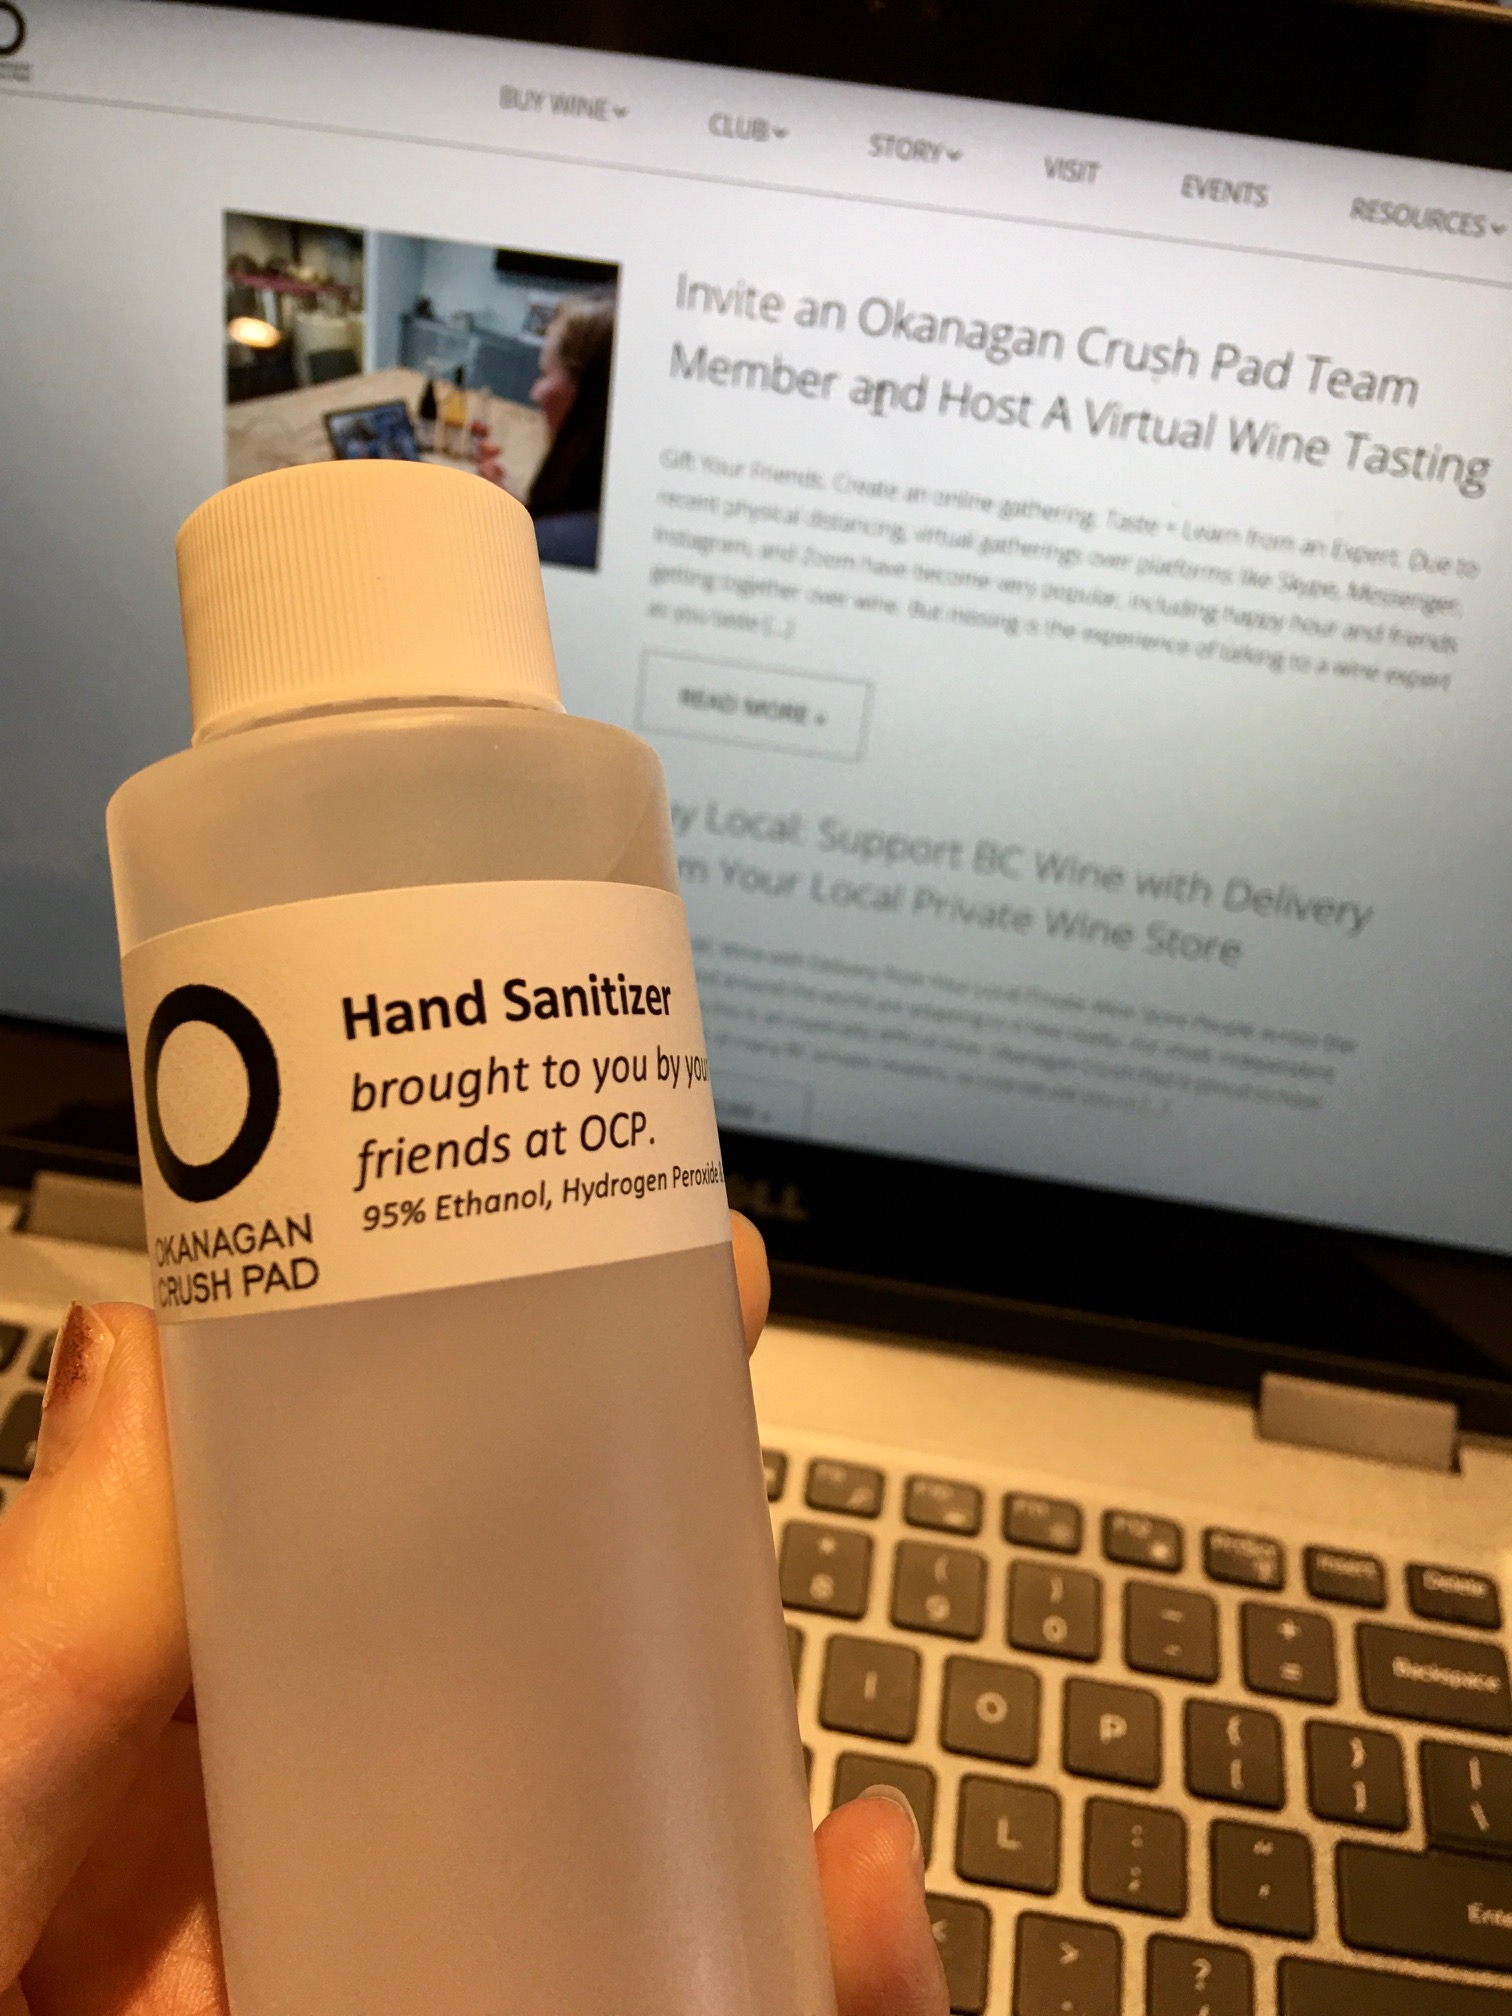 Okanagan Crush Pad hand sanitizer